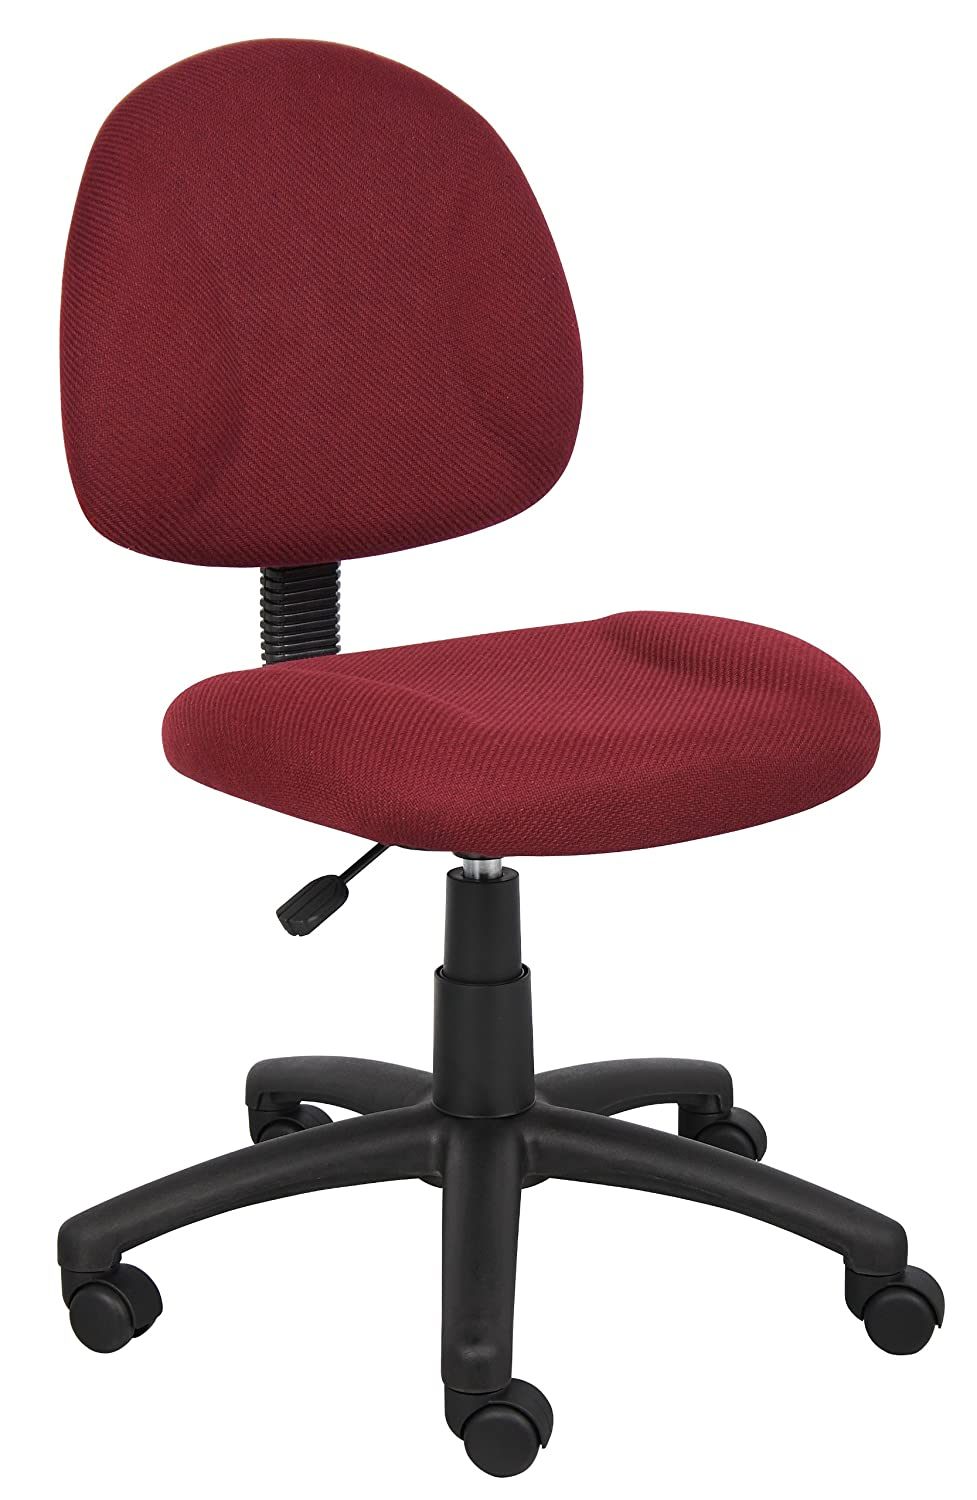 Back posture chair - Amazon Com Boss Office Products B315 By Perfect Posture Delux Fabric Task Chair Without Arms In Burgundy Kitchen Dining